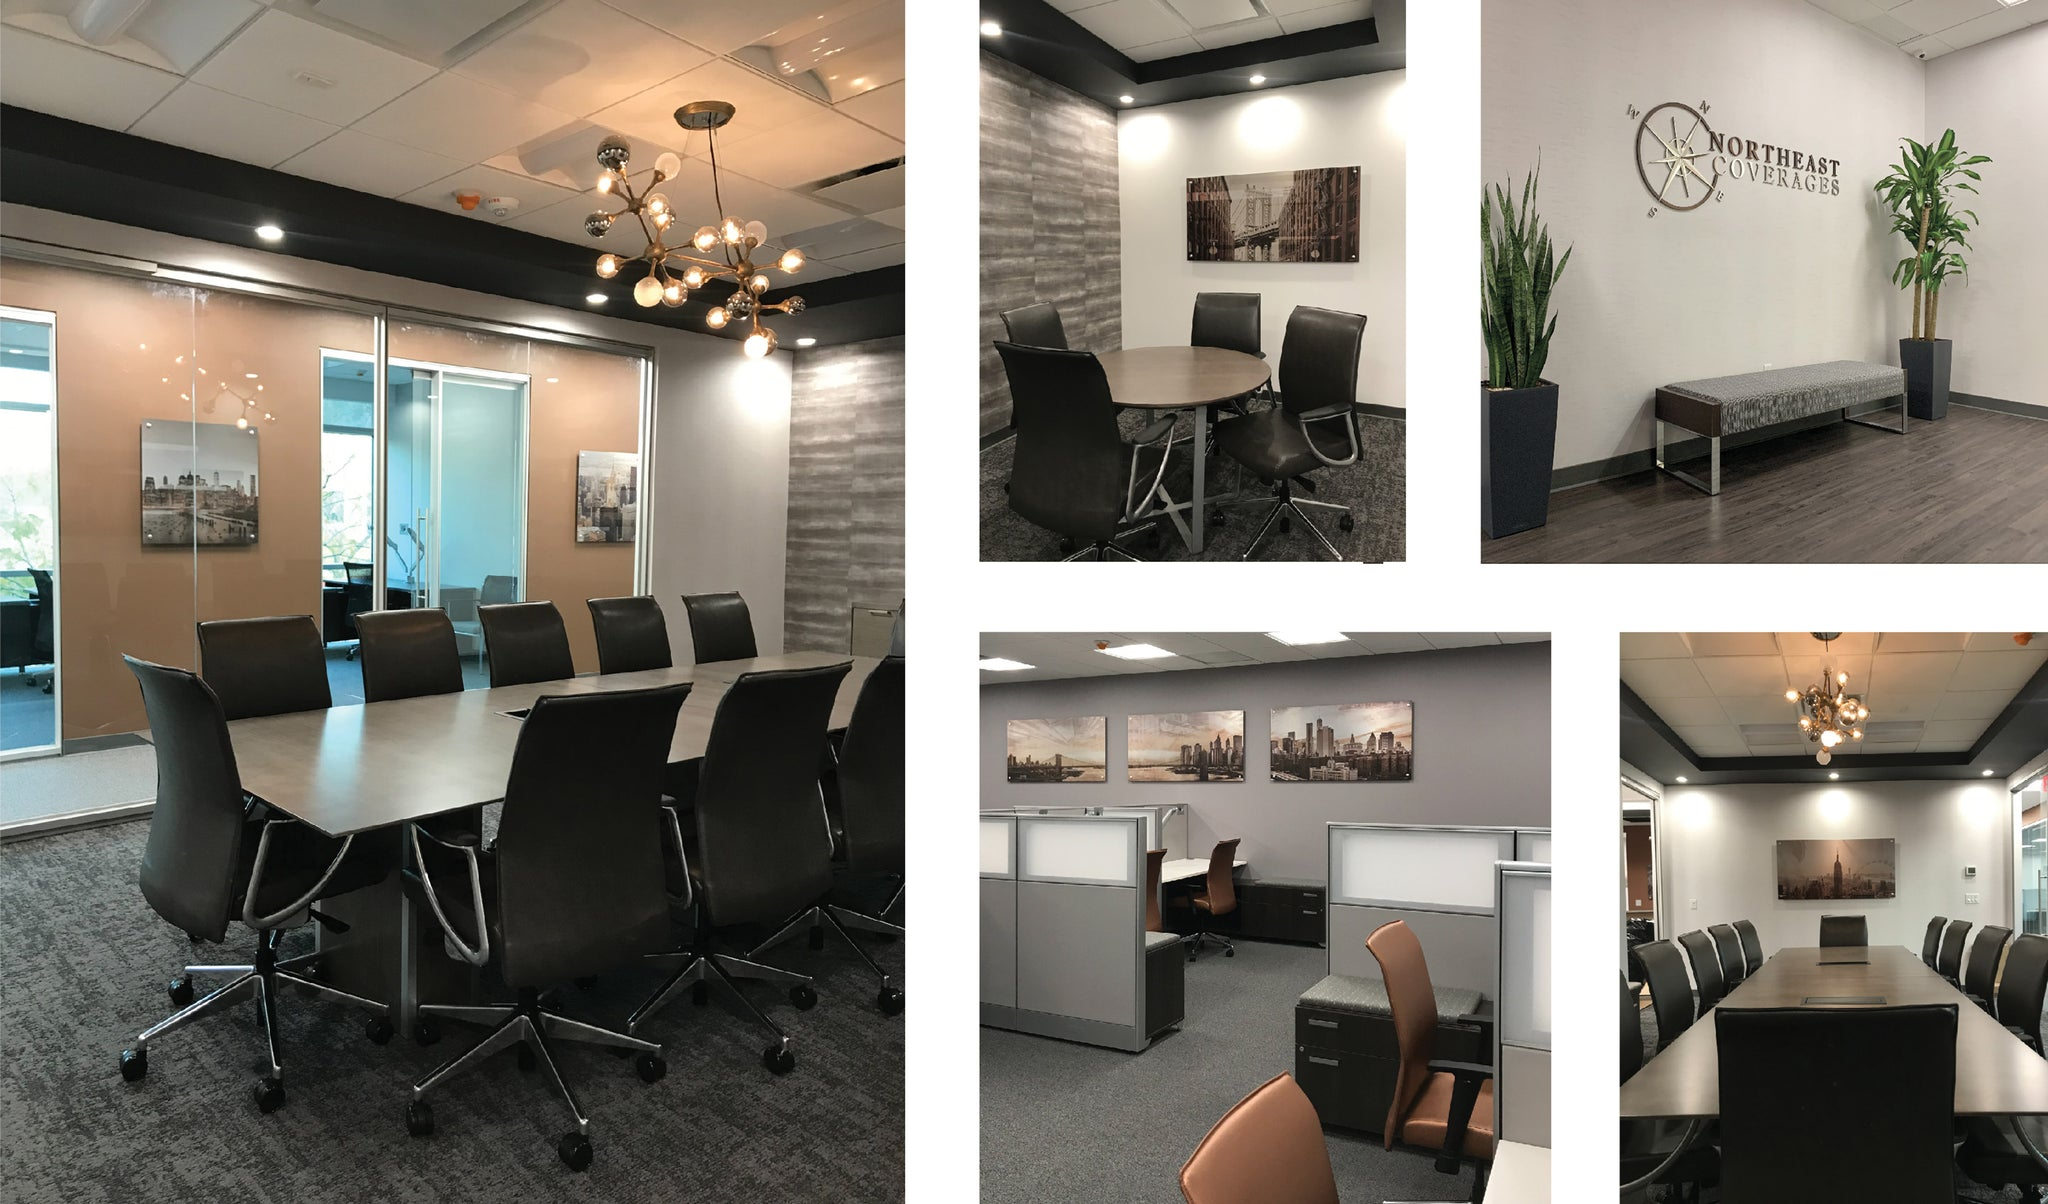 northeast coverages in garden city new york long island nassau county insurance agency office space interior design with custom artwork wallcovering flooring seating lighting branding by id unique solutions inspire design creative studio